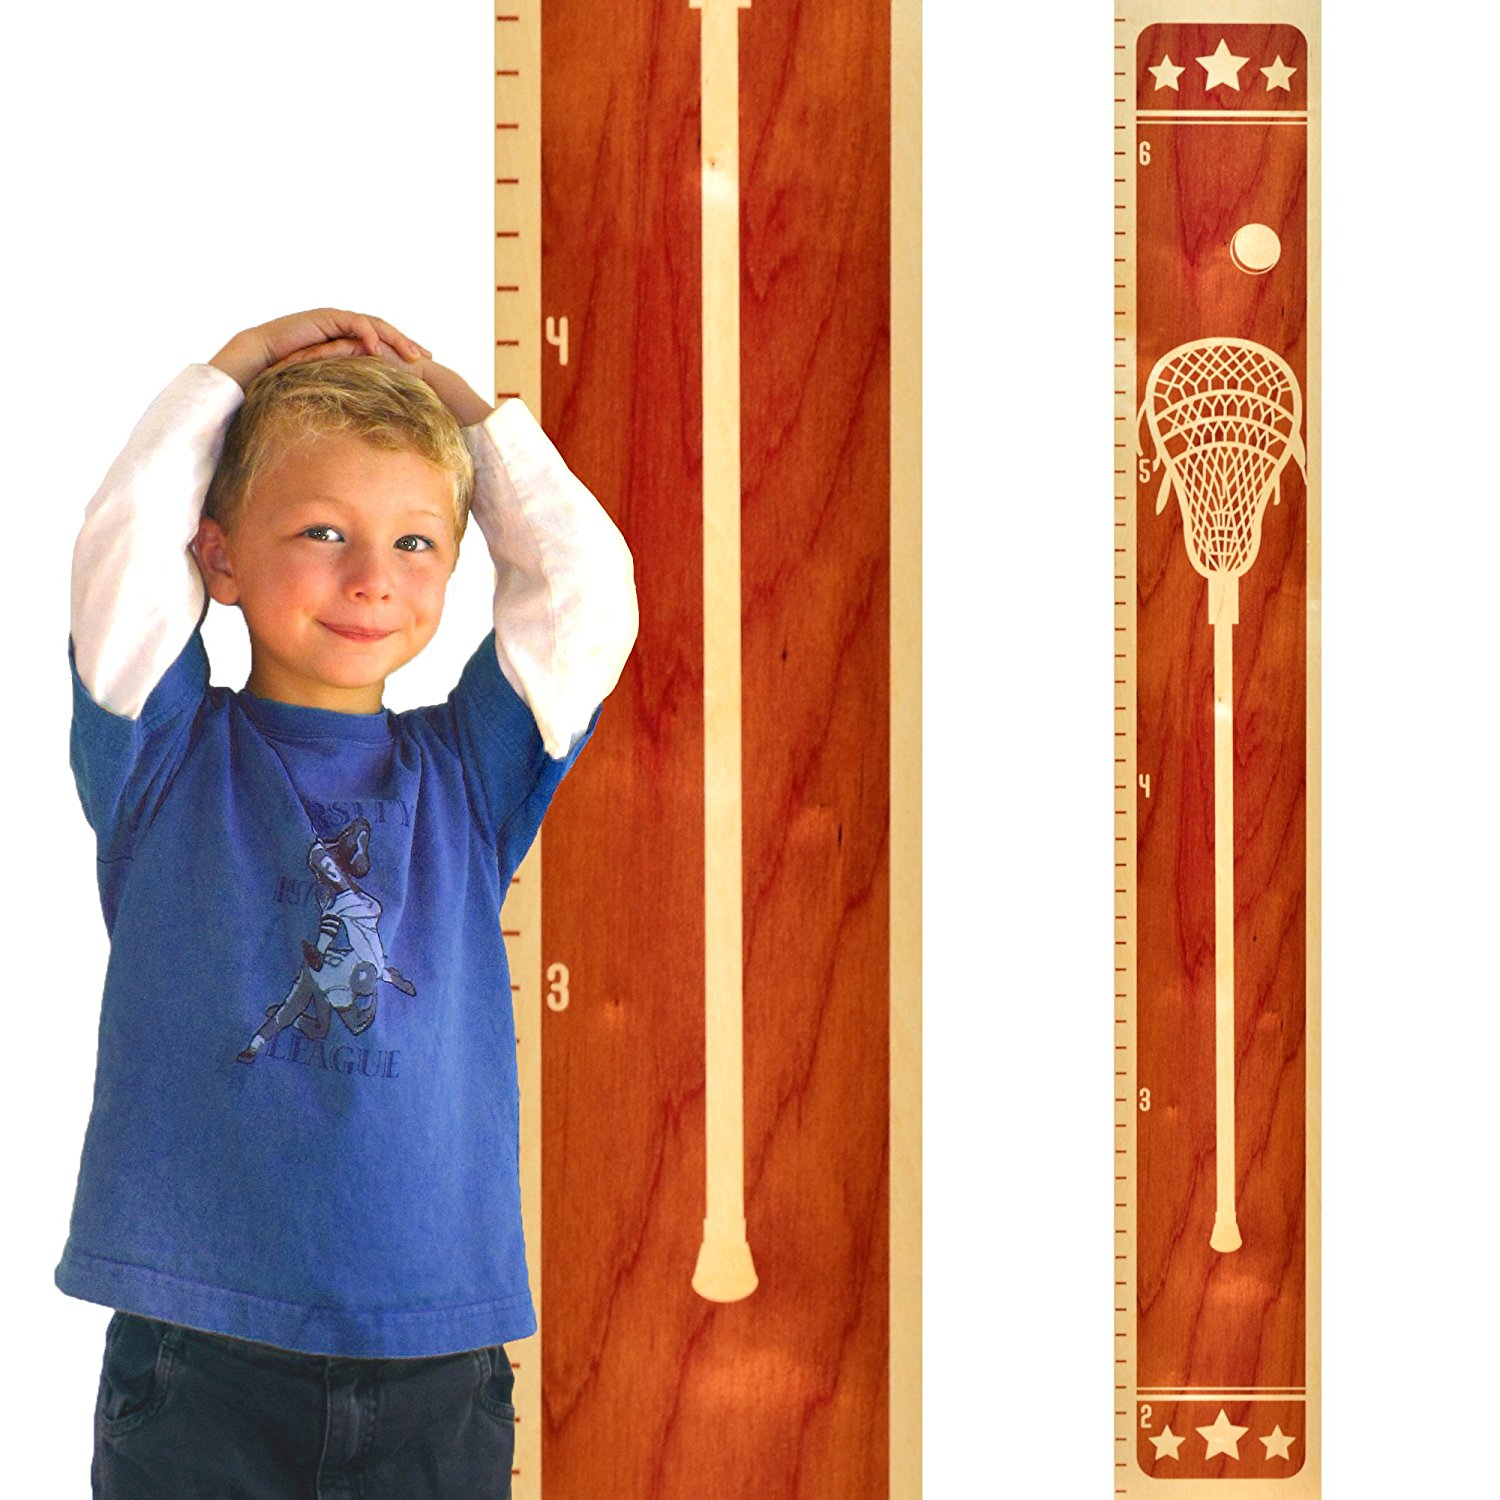 Growth Chart Art Wooden Height Chart | Sports Growth Char...